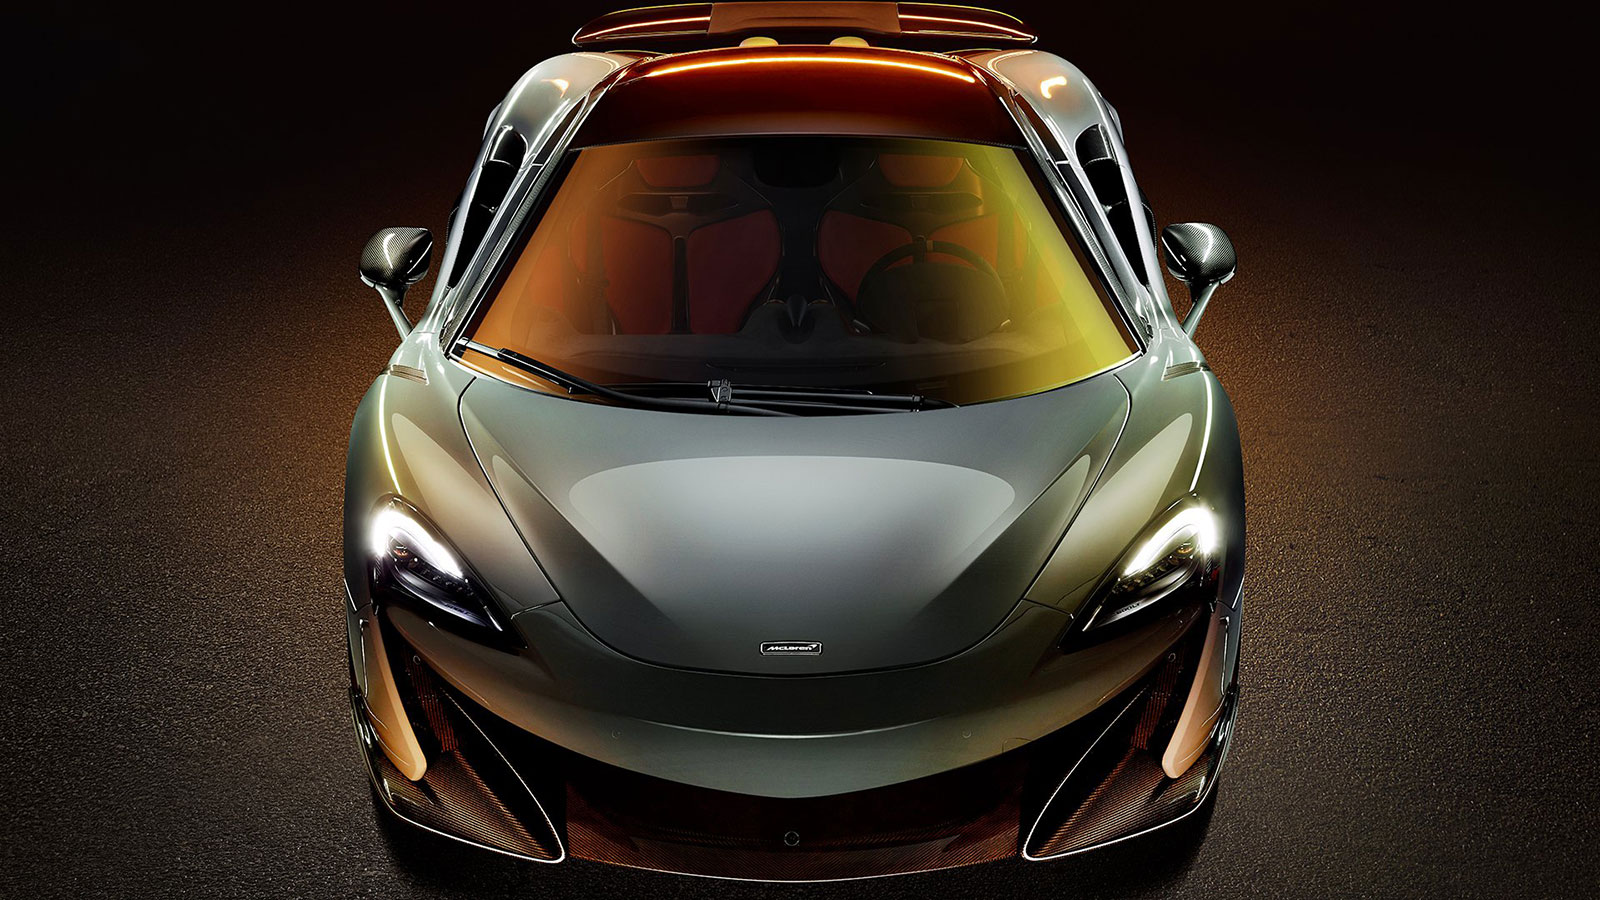 McLaren 600LT - The Edge Is Calling image 2